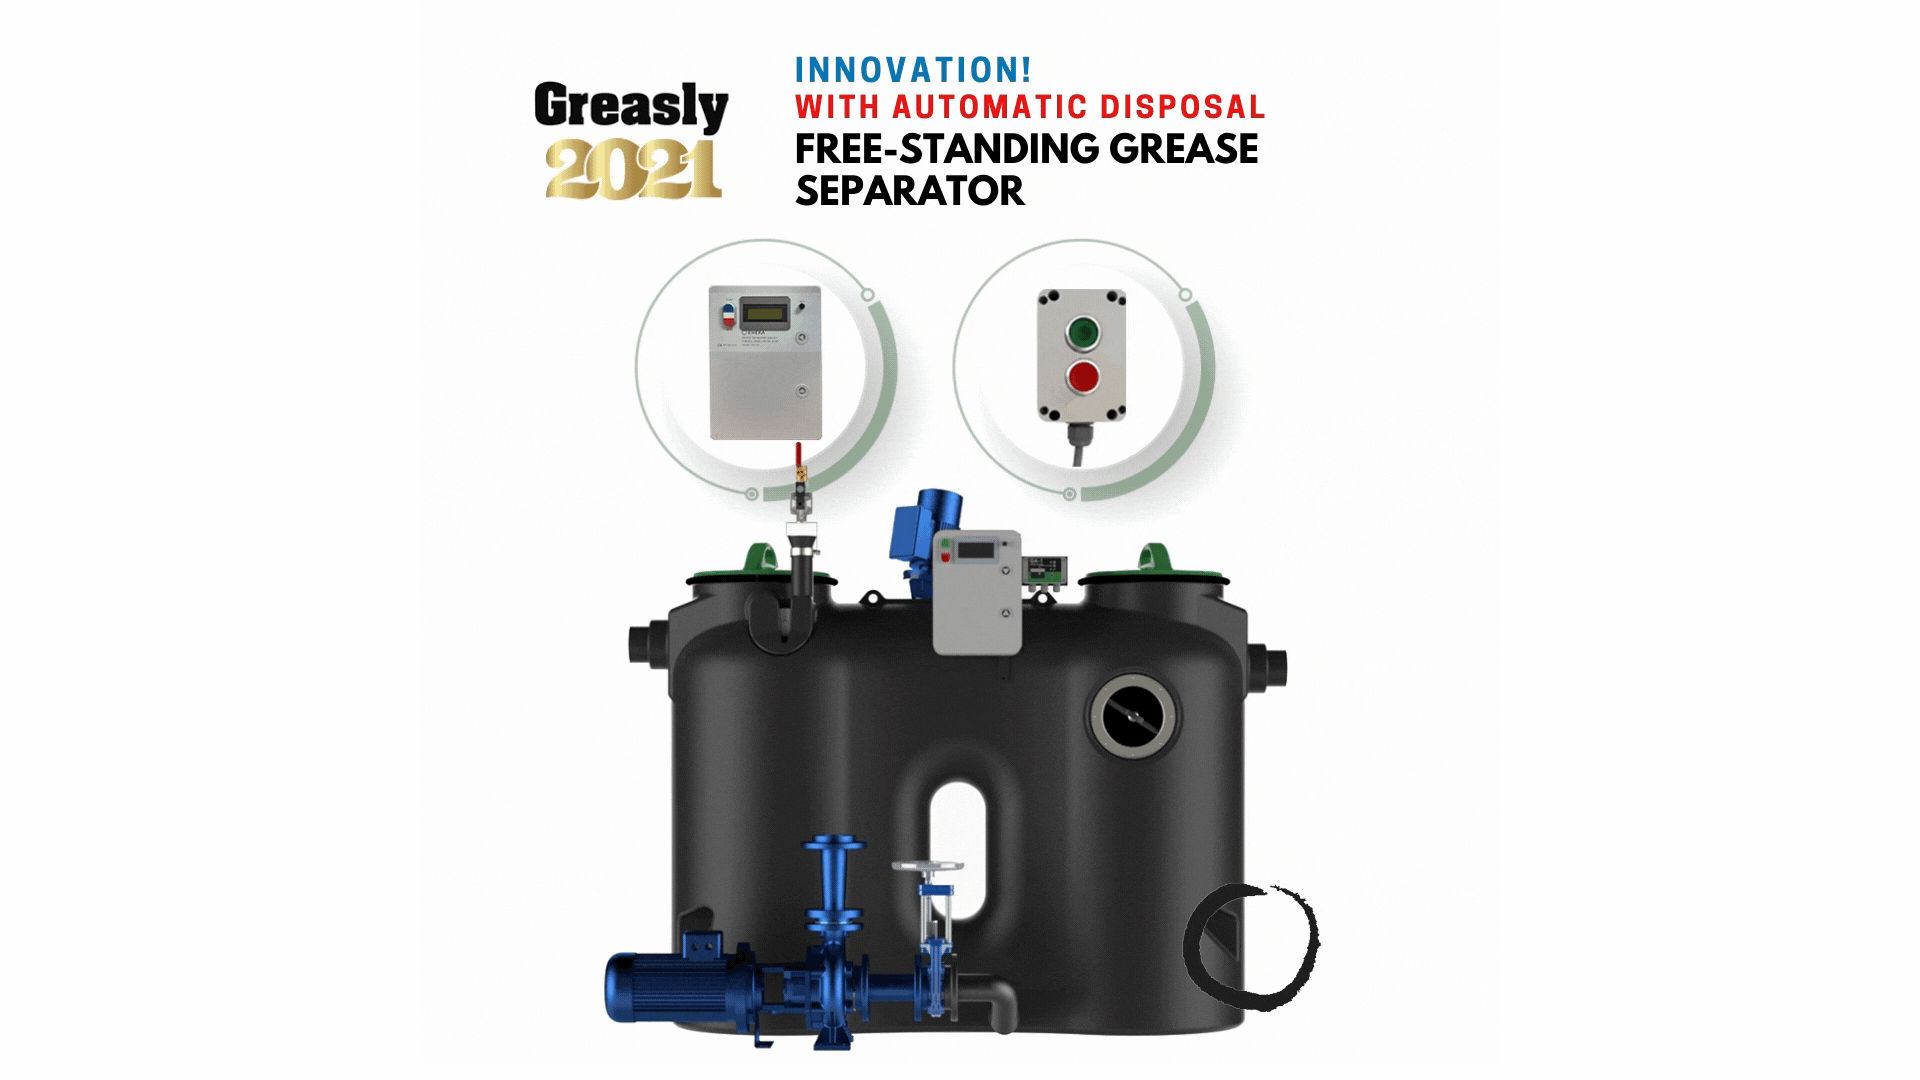 Gallery image 1 - Grease separator model made of polyethylene for free-standing installation inside buildings. Grease separator is compact, rigid and lightweight but very rigid units at the same time.